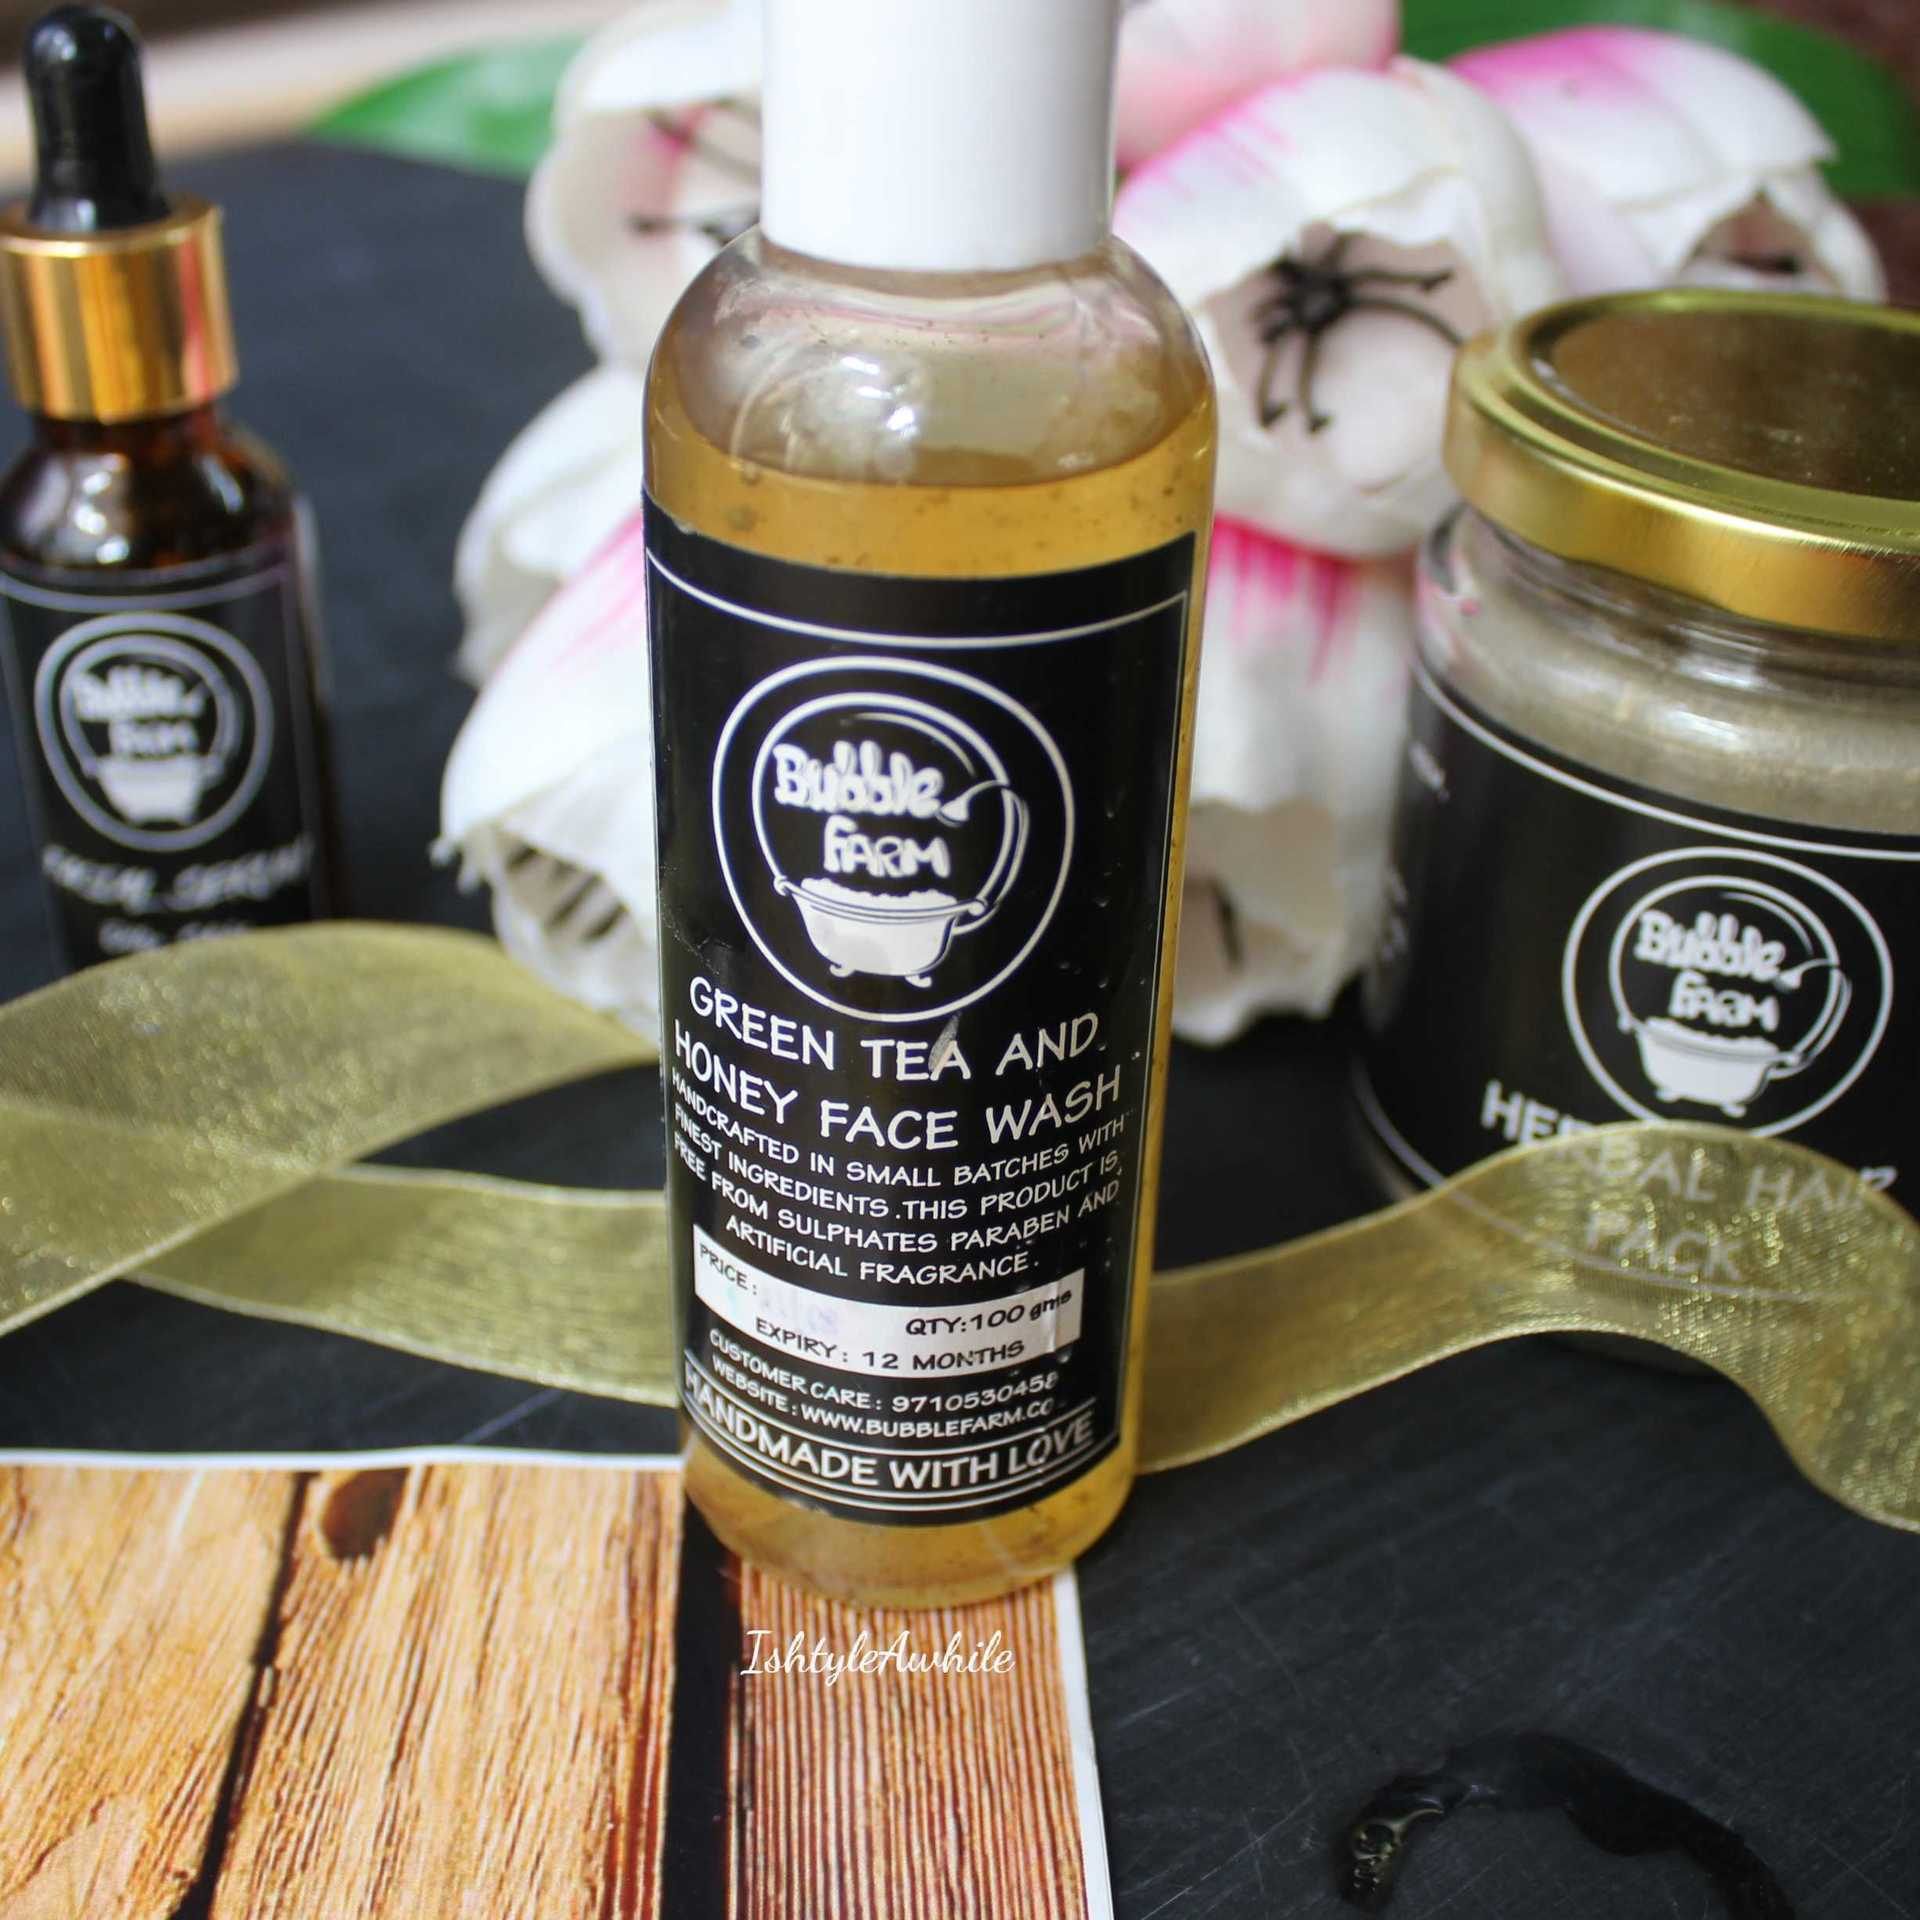 IshtyleAwhile - A Chennai based Indian Fashion Blog - green tea and honey facewash from bubblefarm products